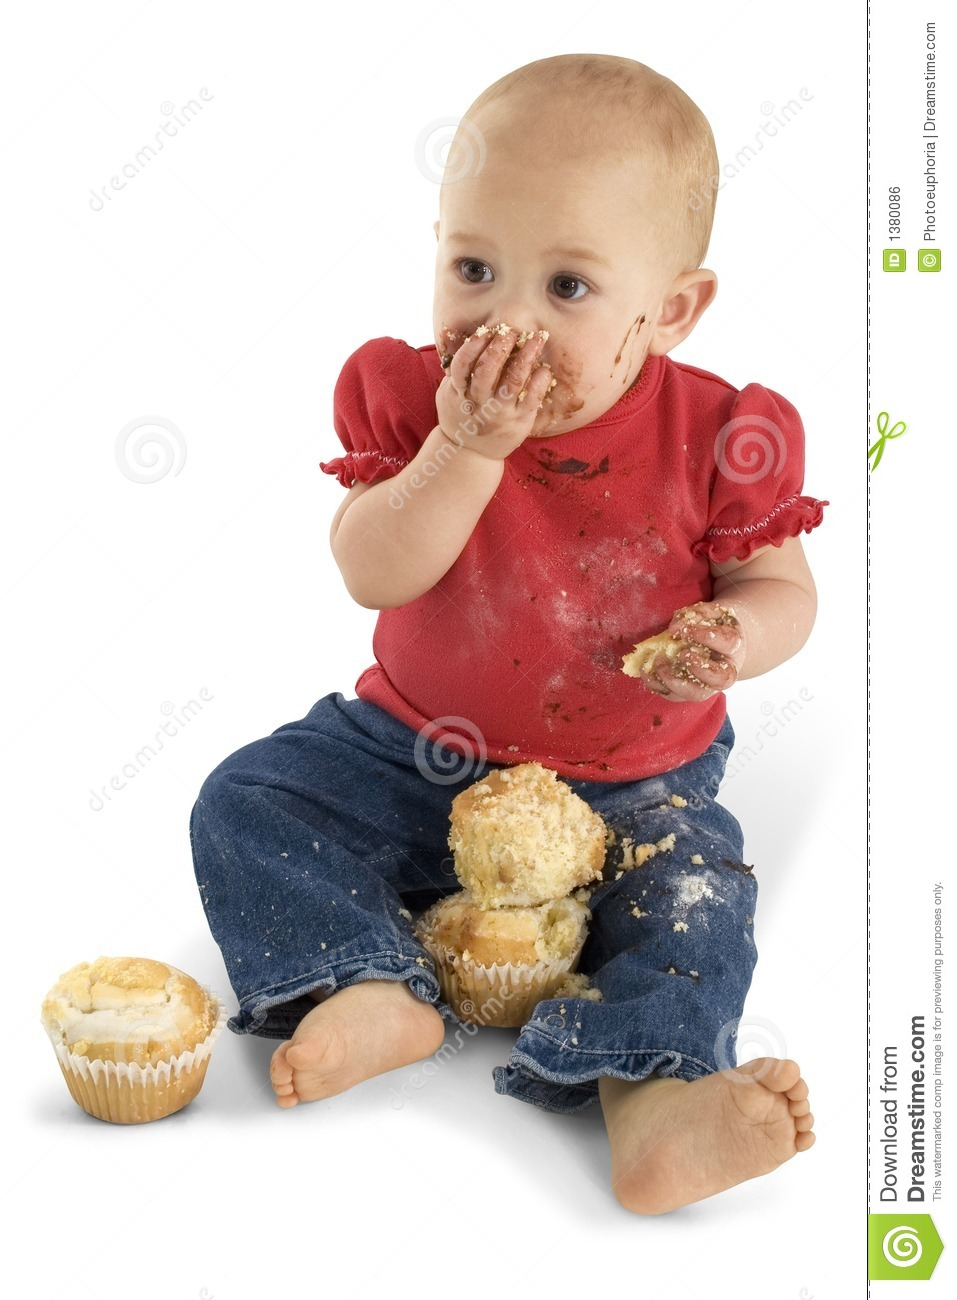 baby eating muffins royalty free stock image image 1380086 bridge clip art free images bride and groom clipart free download